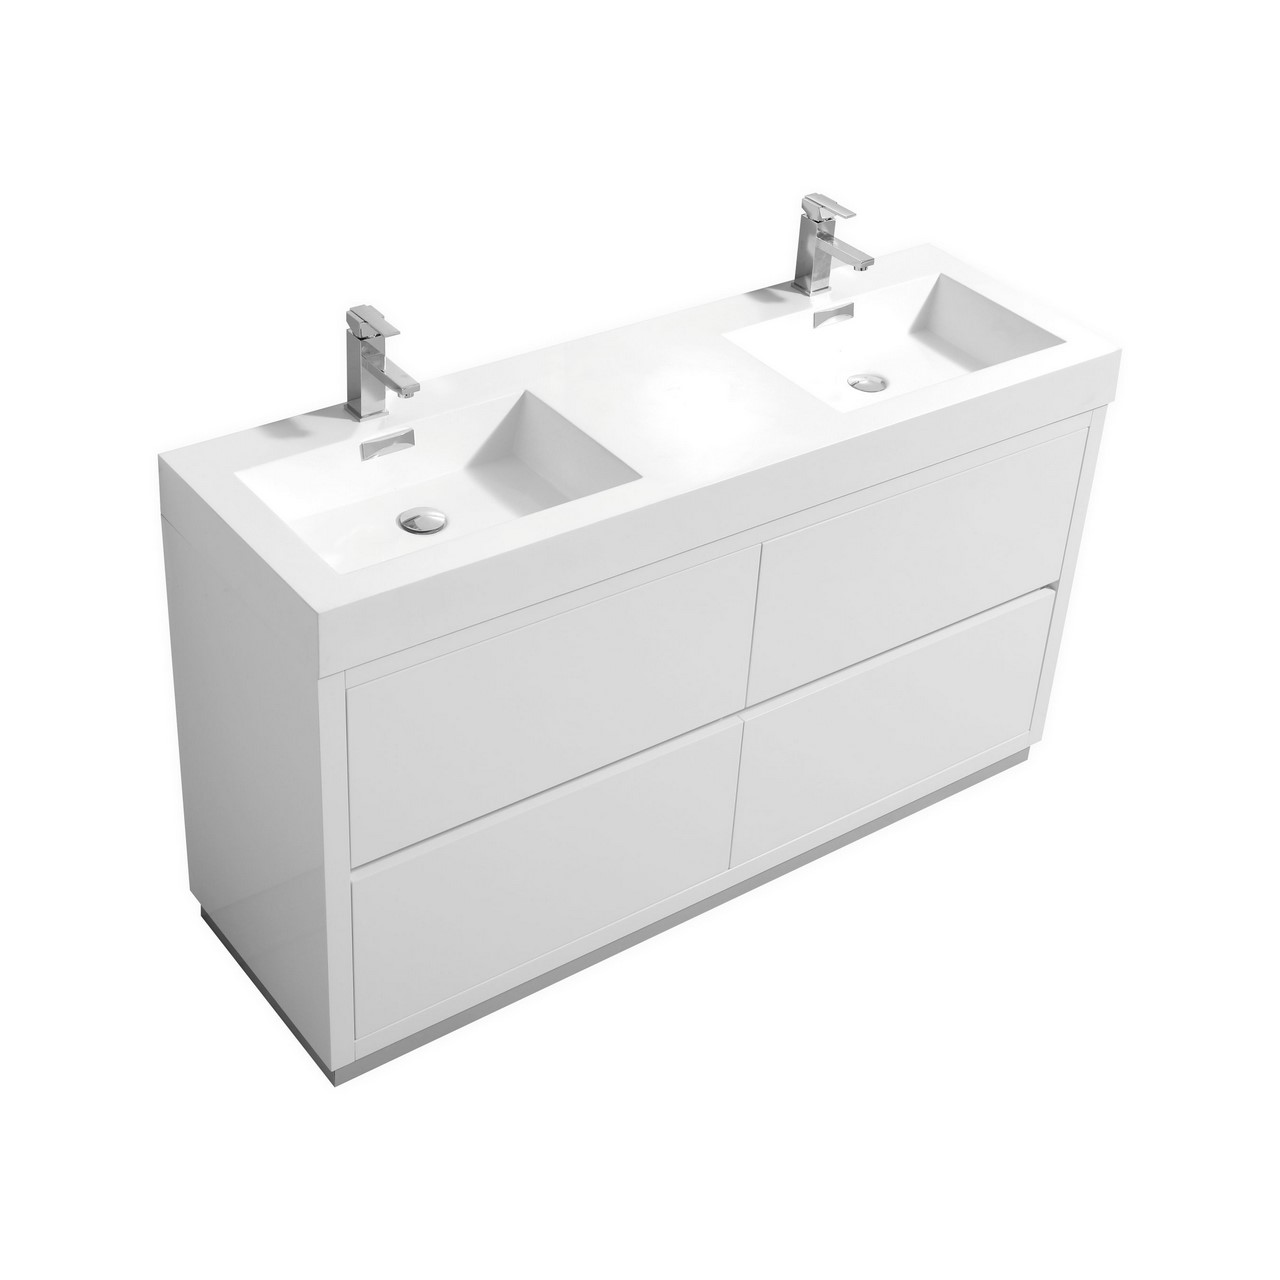 Bliss 60 Double Sink High Gloss White Free Standing Vanity